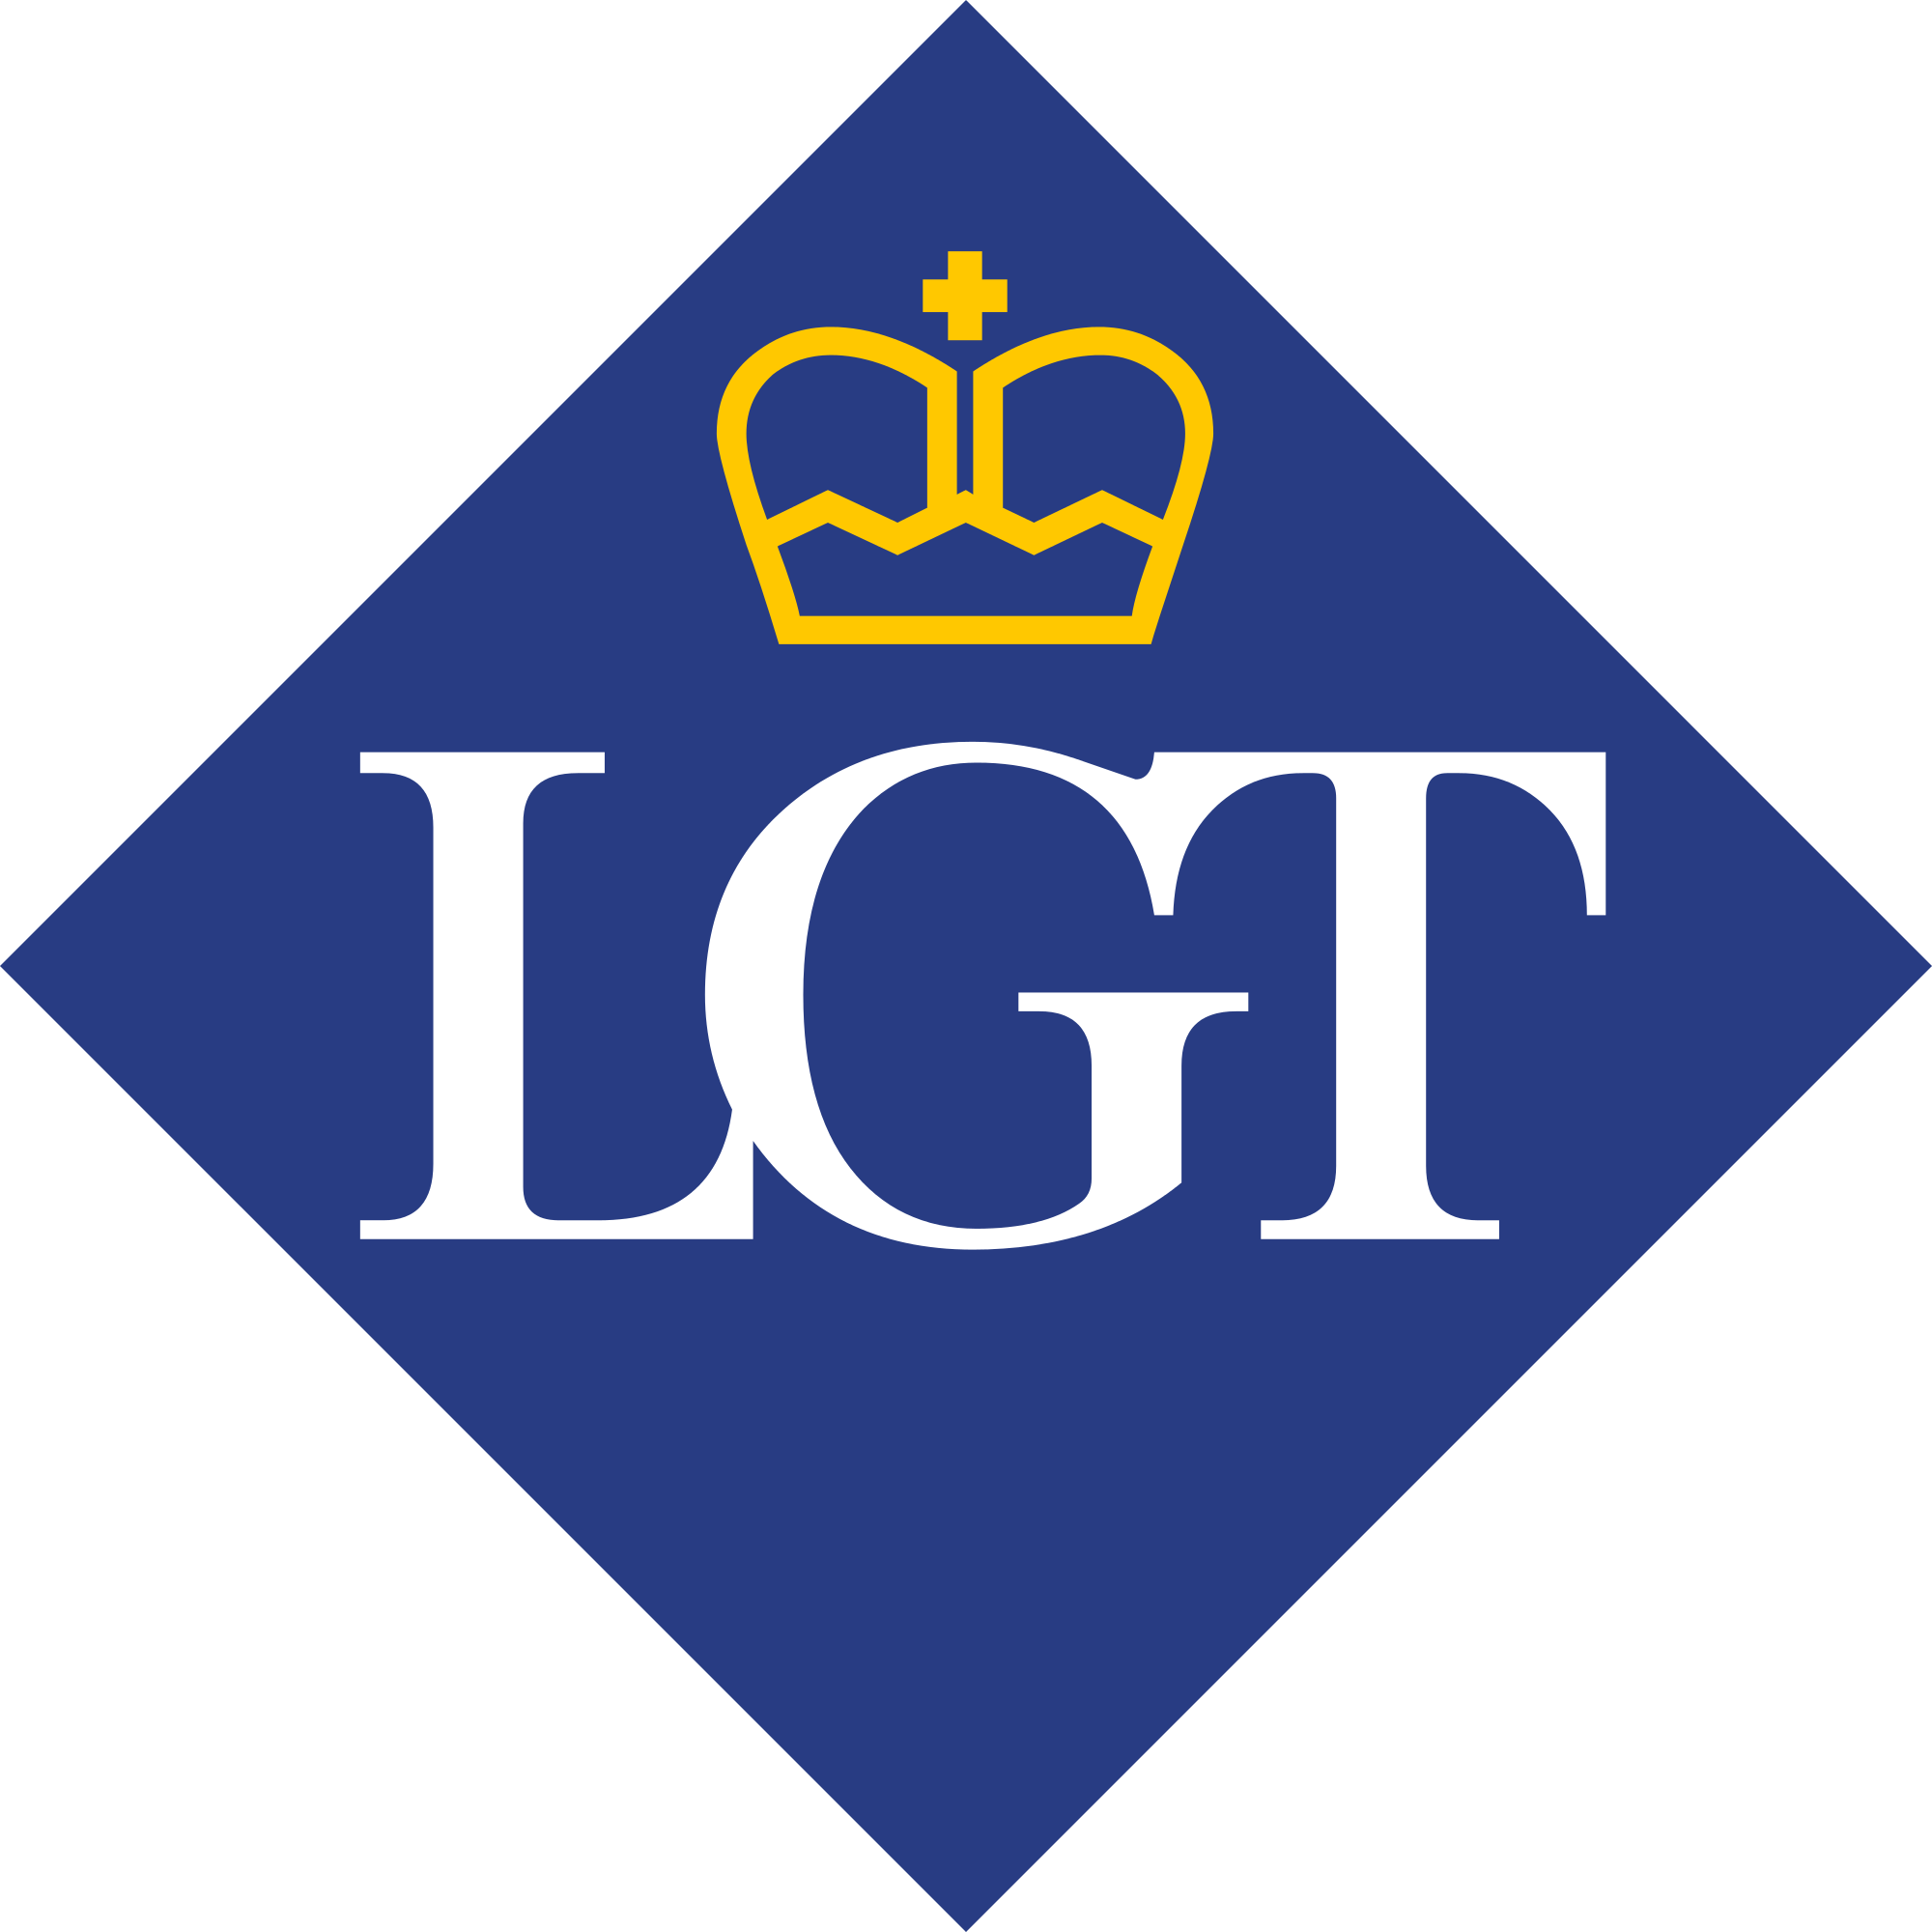 LGT Middle East Ltd